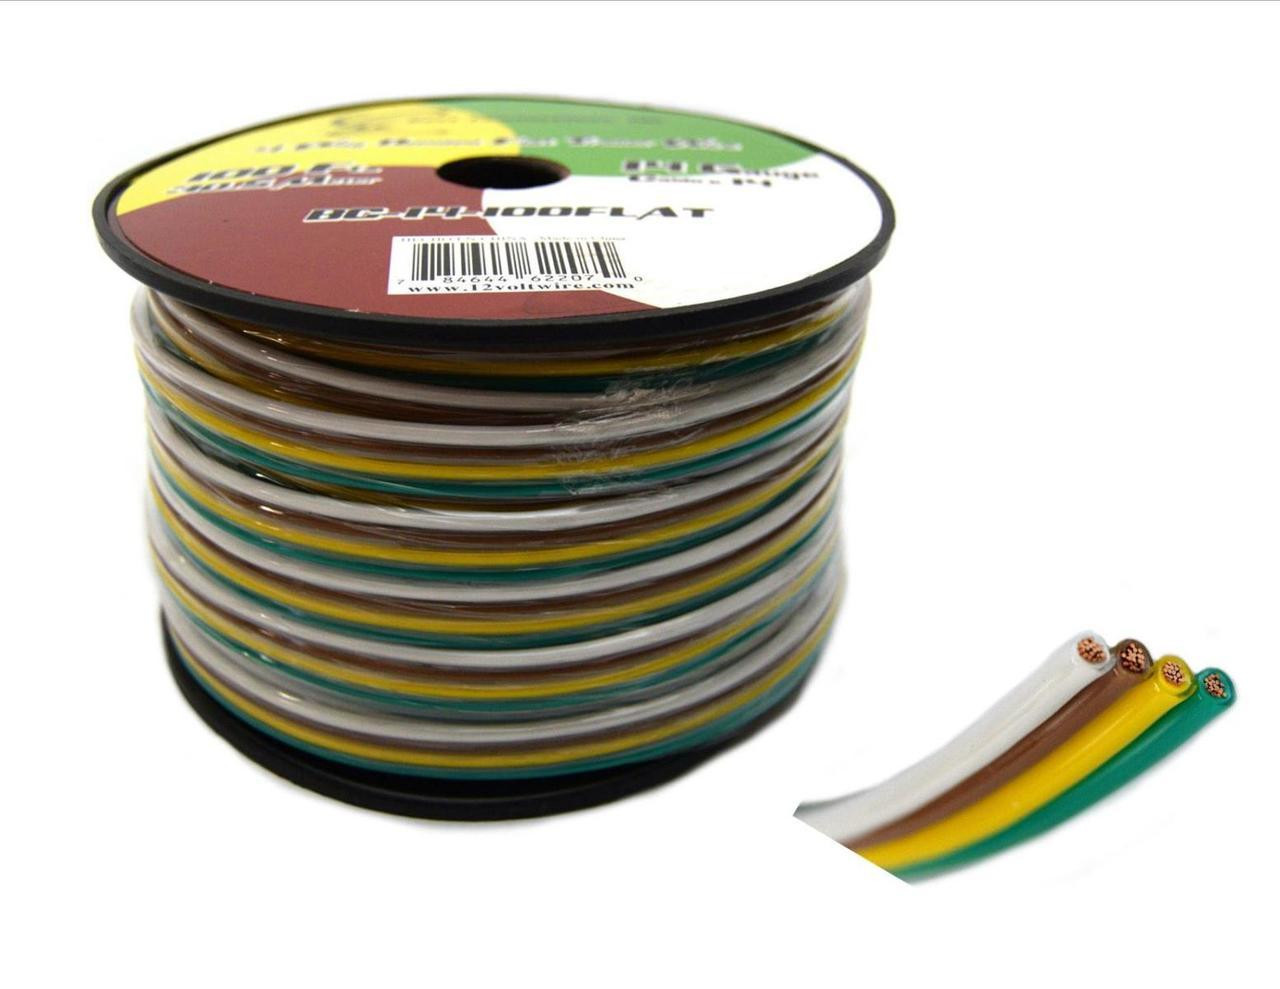 flat trailer light cable wiring harness 100 feet 14 awg 4 wire cca [ 1280 x 989 Pixel ]